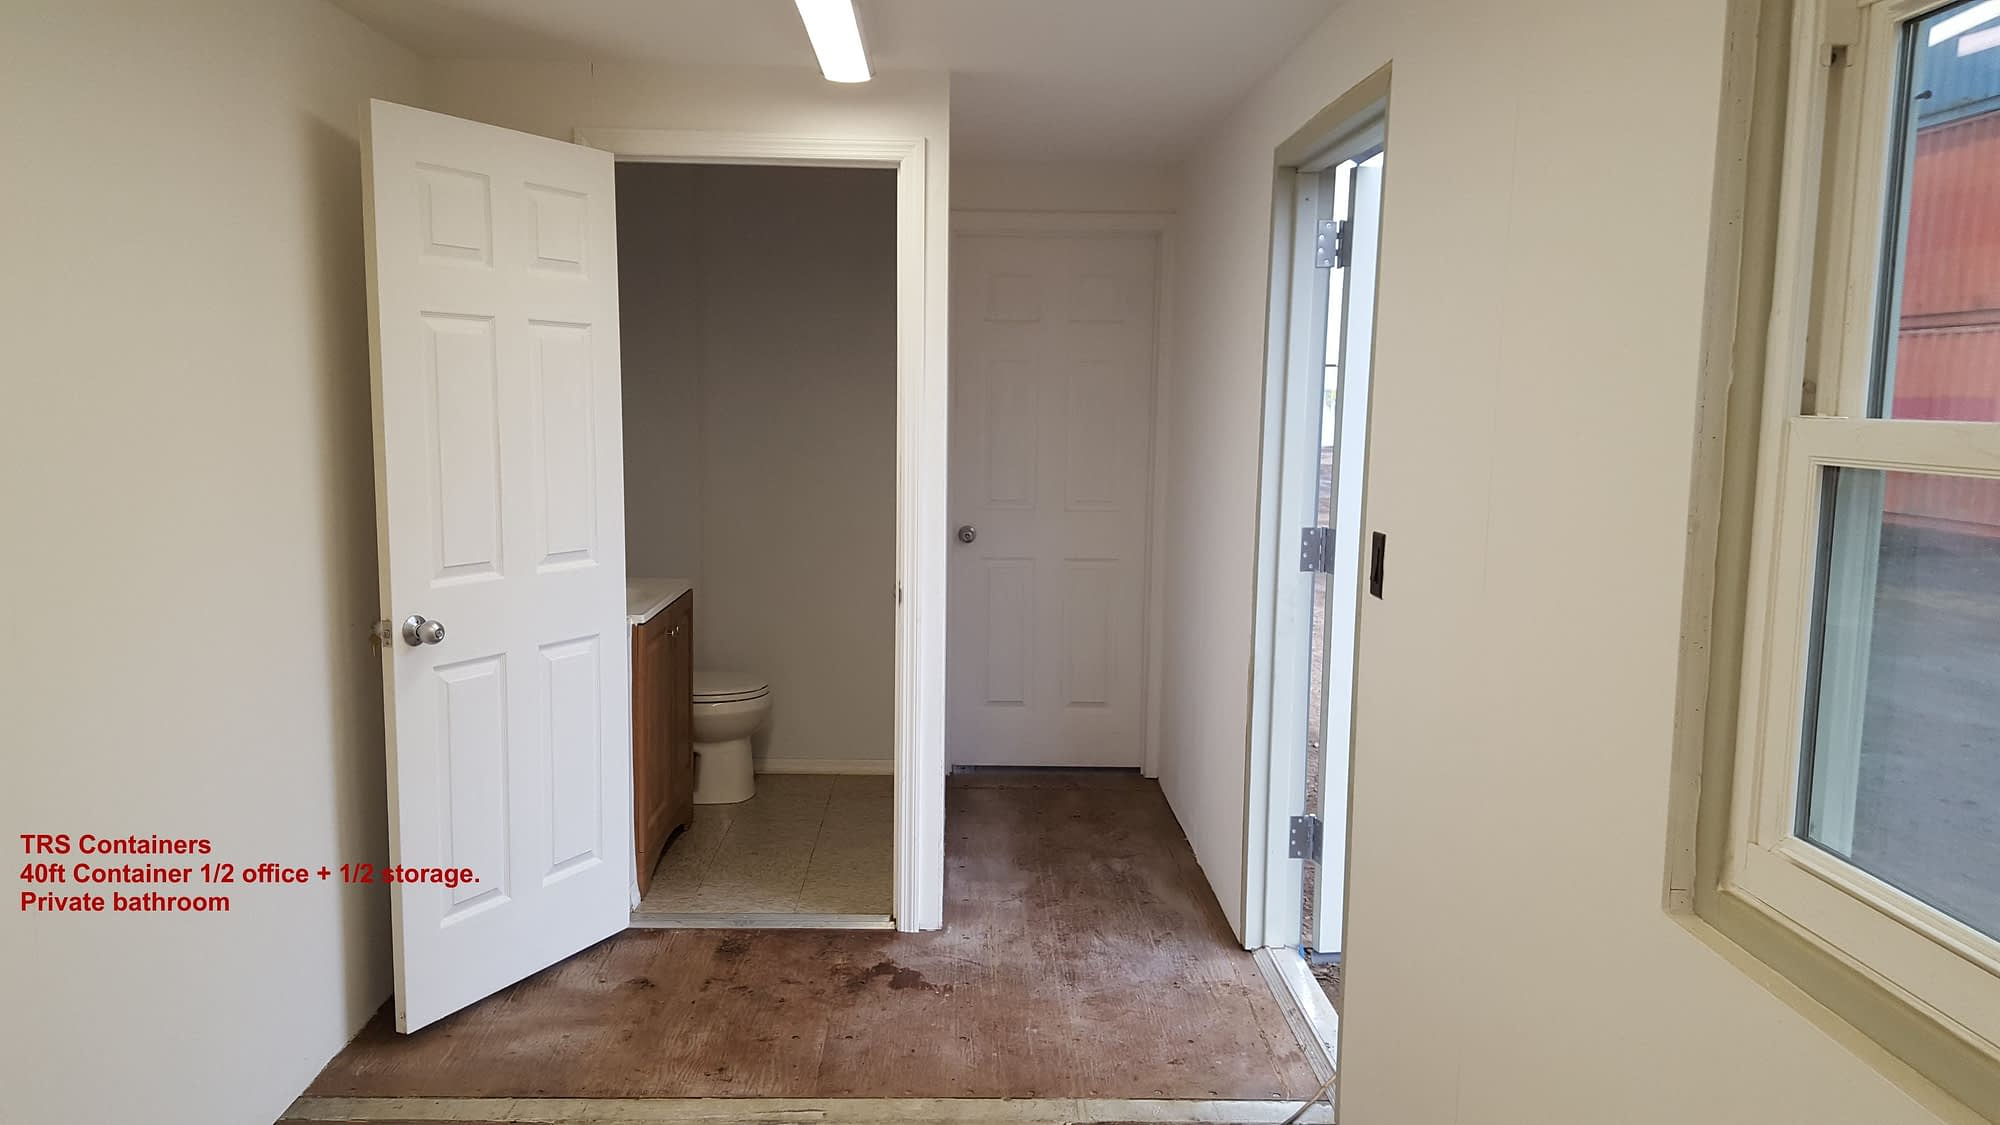 TRS offers 1/2 office + 1/2 cold storage with bathroom